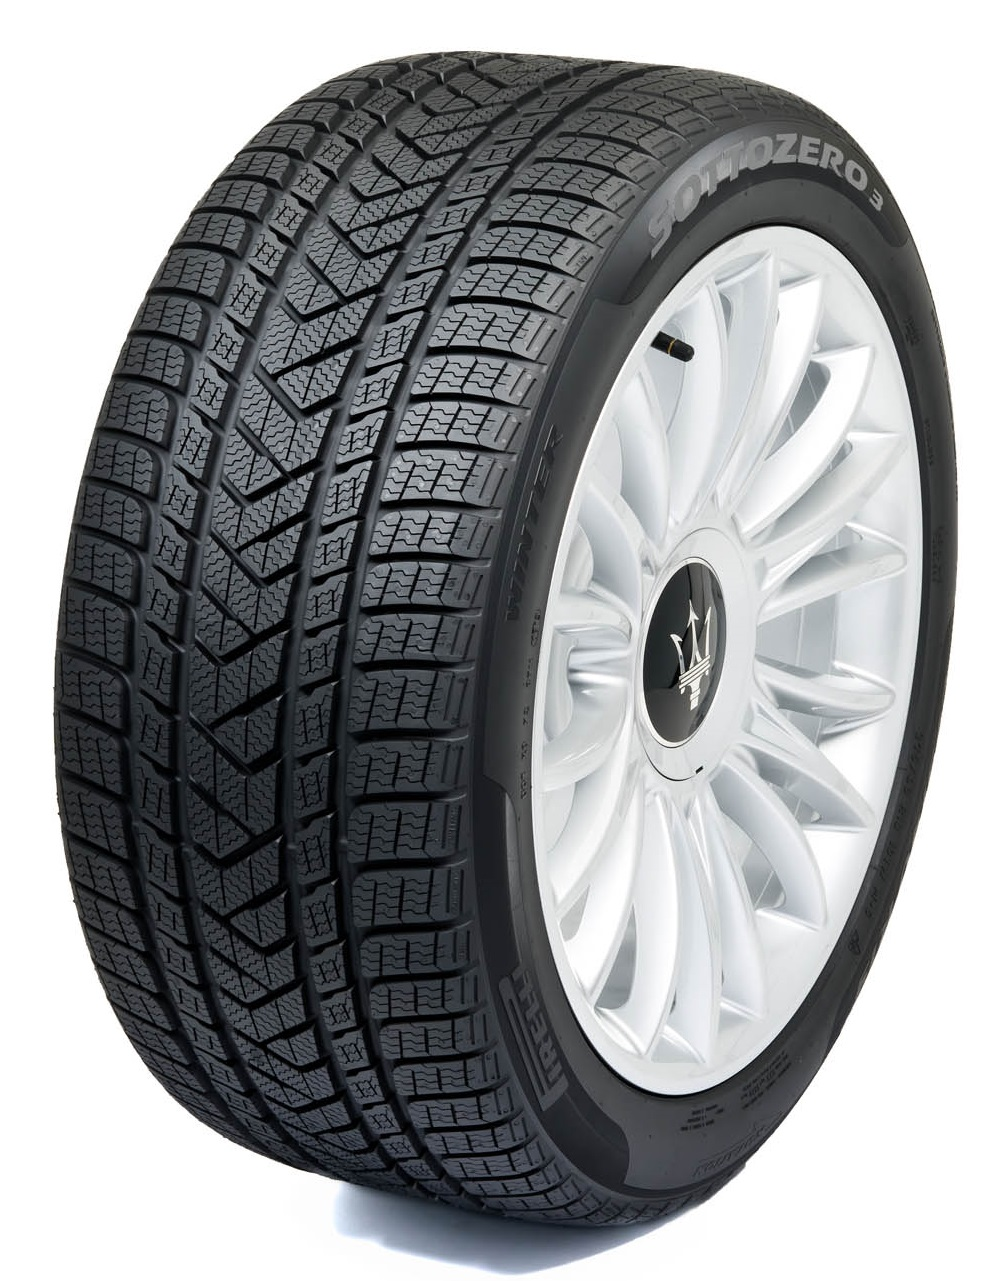 Anvelope IARNA PIRELLI WINTER SOTTO ZERO 3 RUN FLAT - 225/50 R17 98H XL ROF